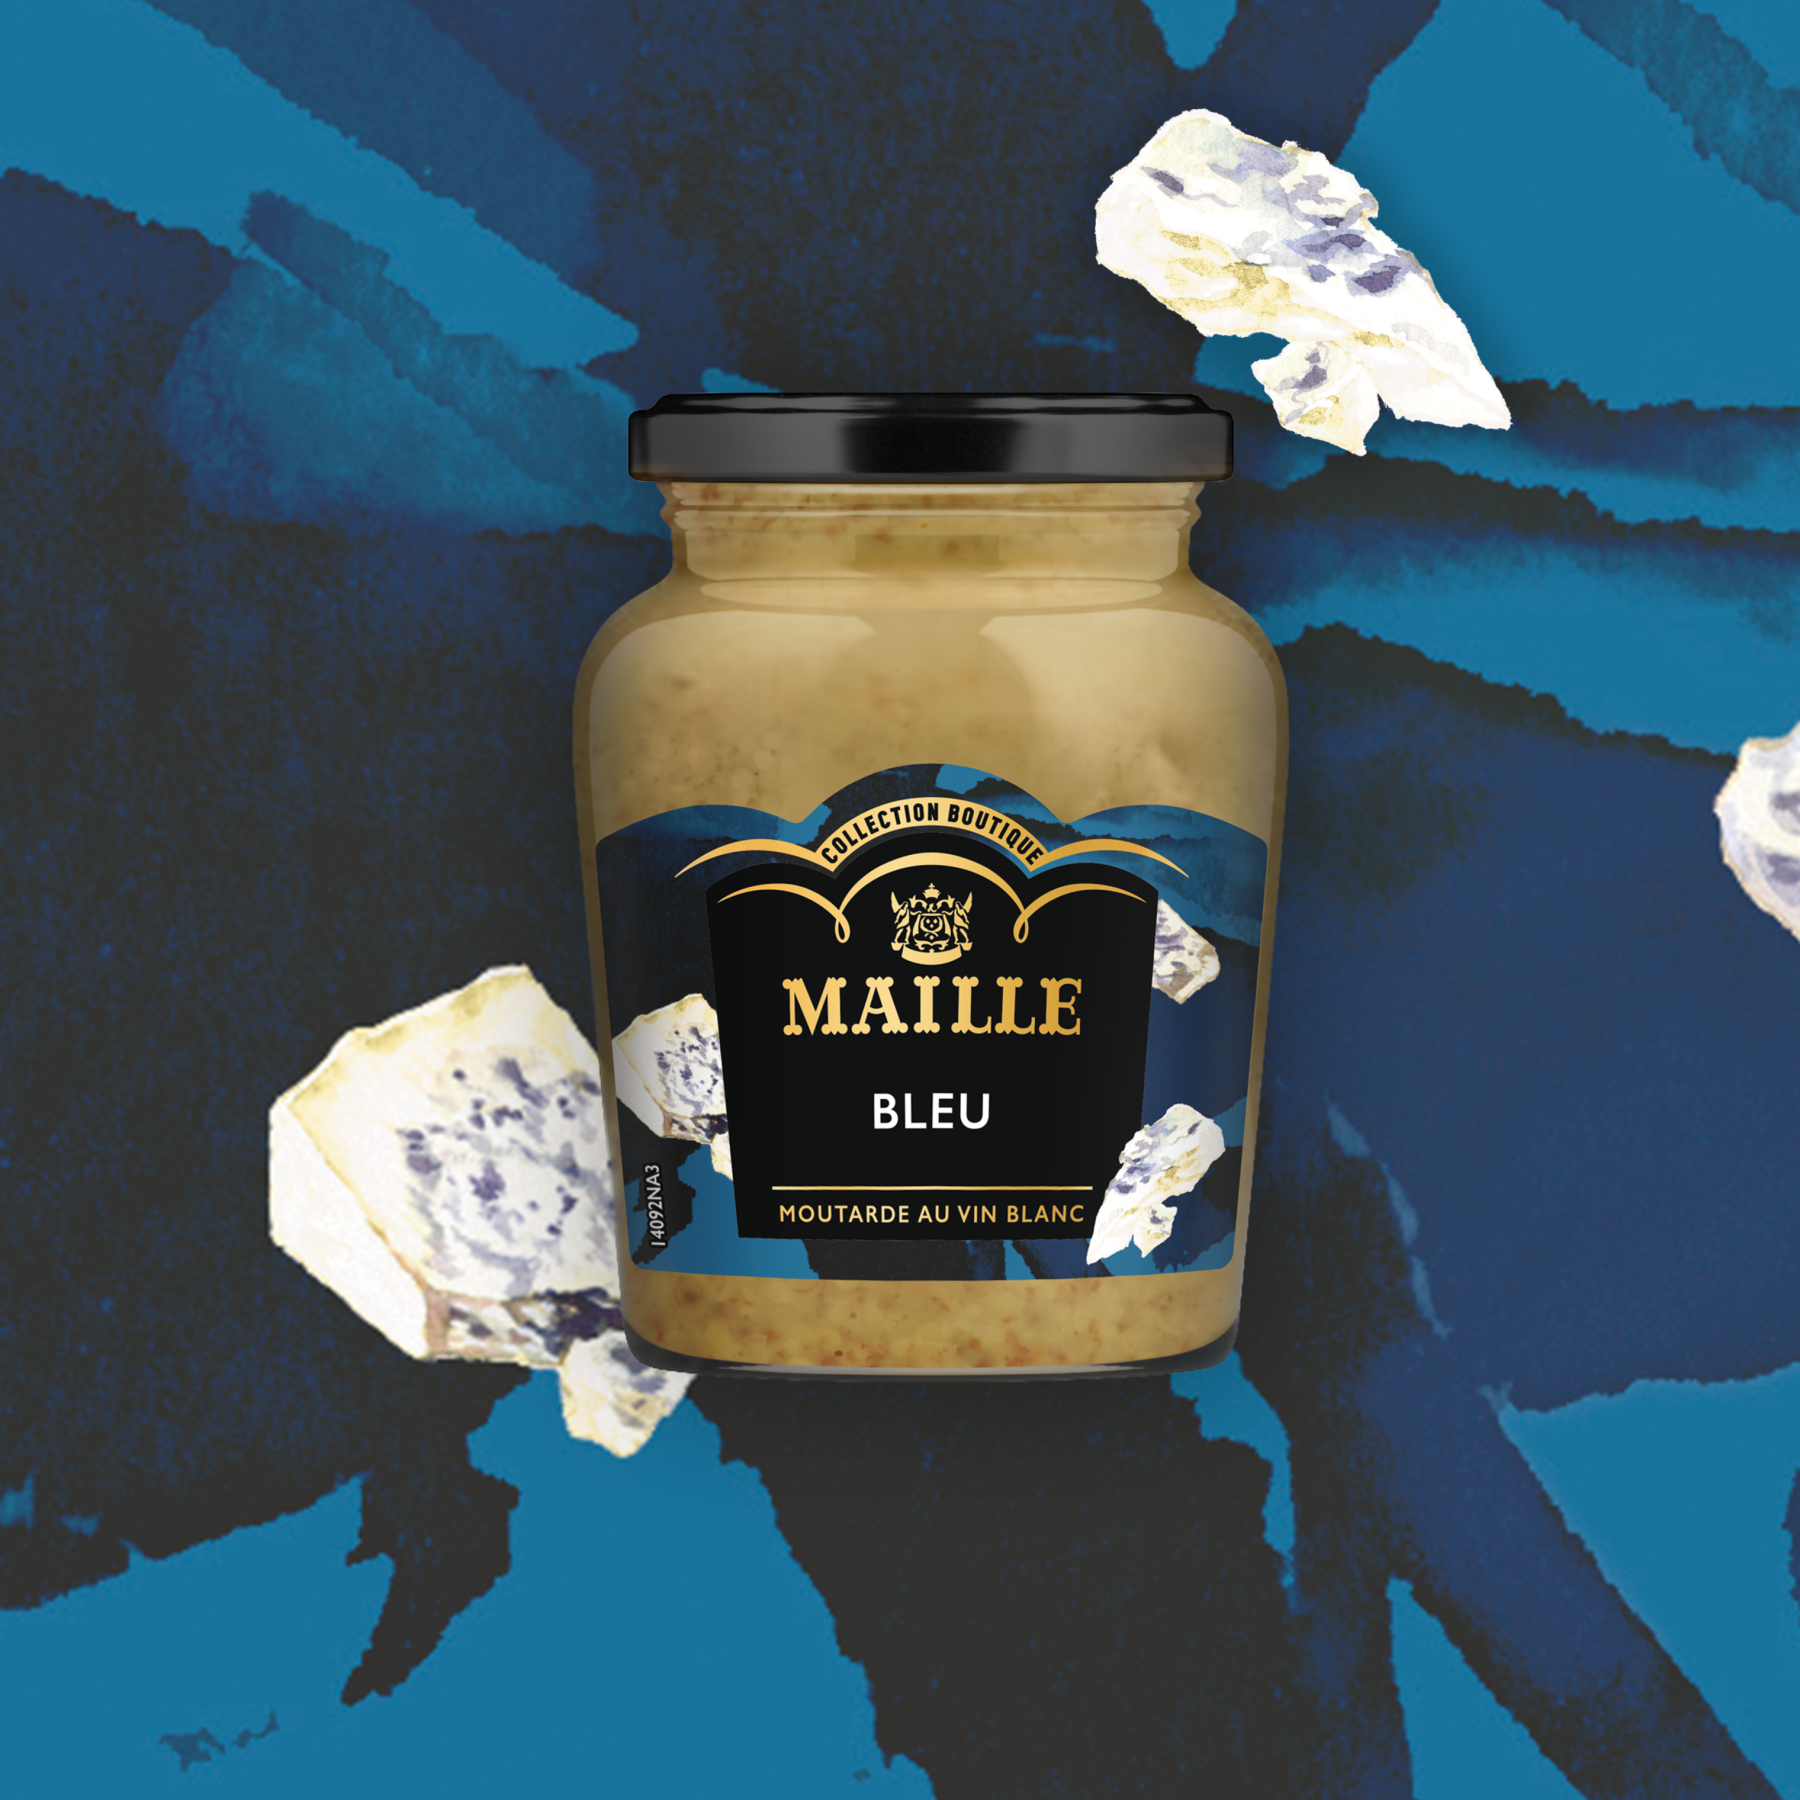 MOUTARDE AU VIN BLANC BLEU 108G ILLUSTRATION